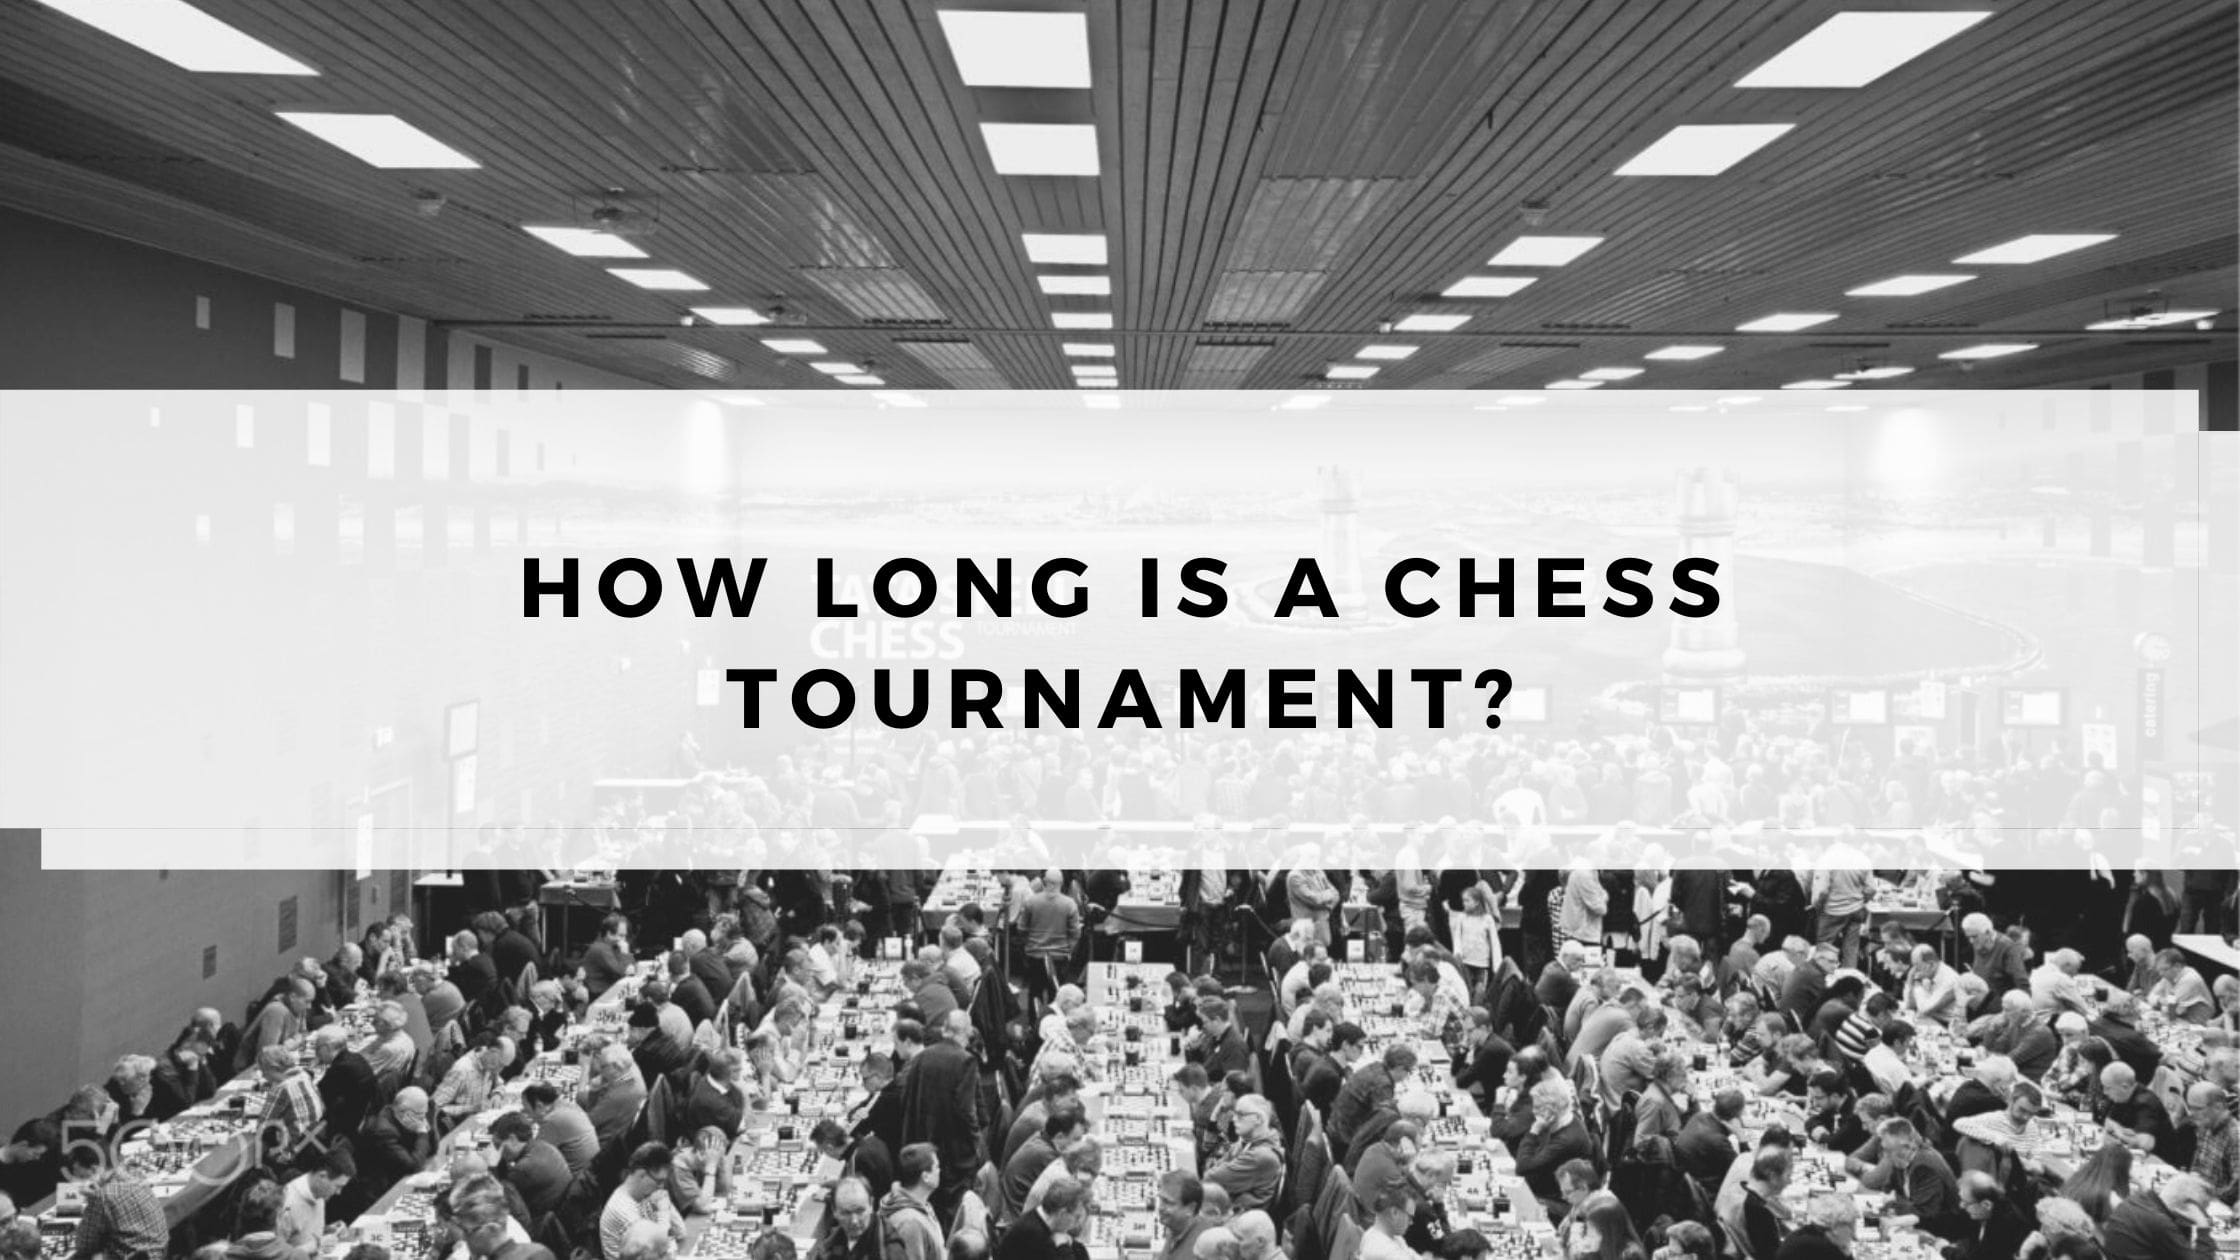 How Long is a Chess Tournament?